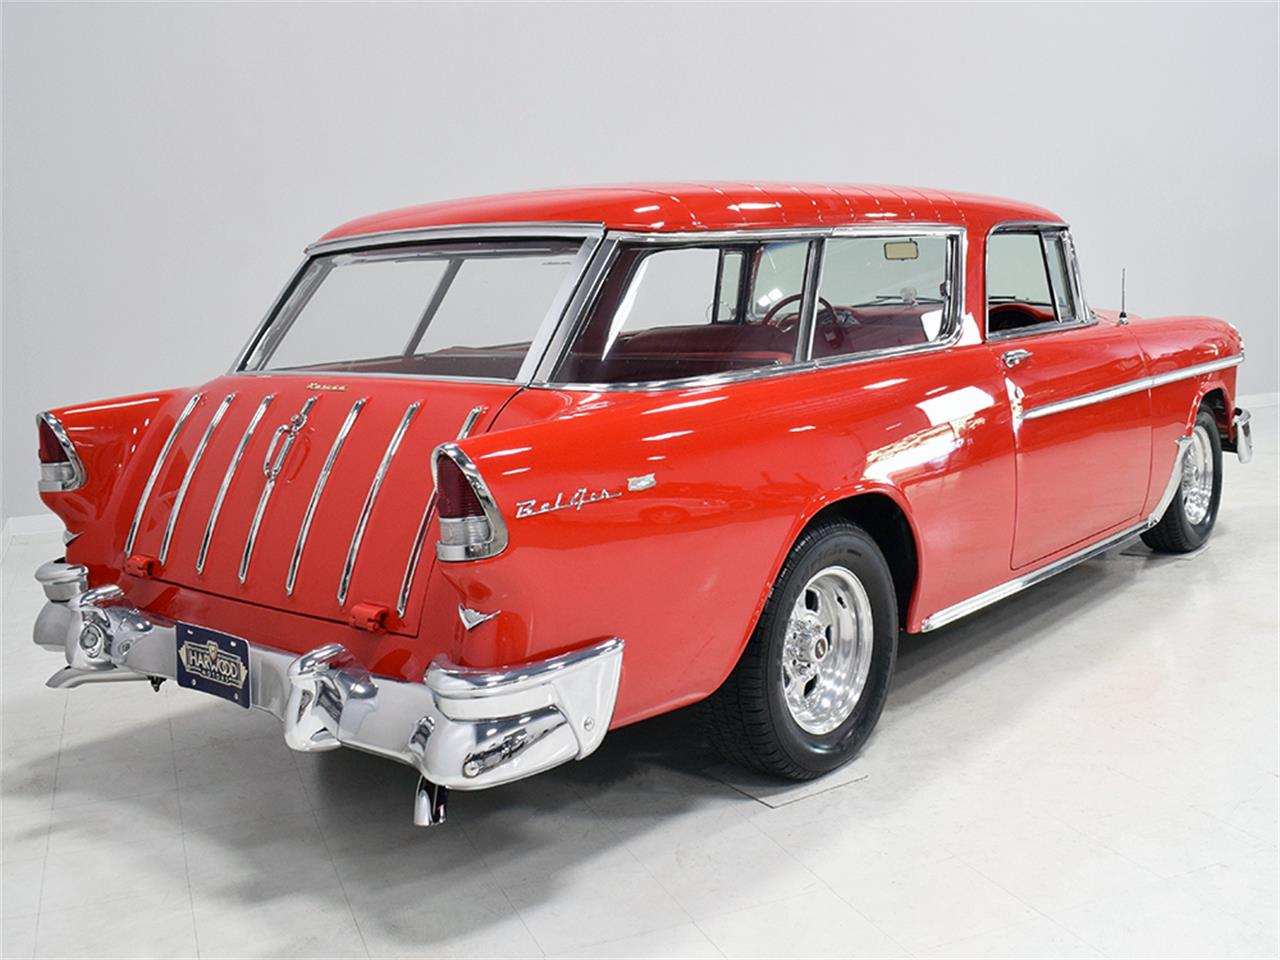 Large Picture of 1955 Chevrolet Nomad located in Ohio - $69,900.00 Offered by Harwood Motors, LTD. - O8YP